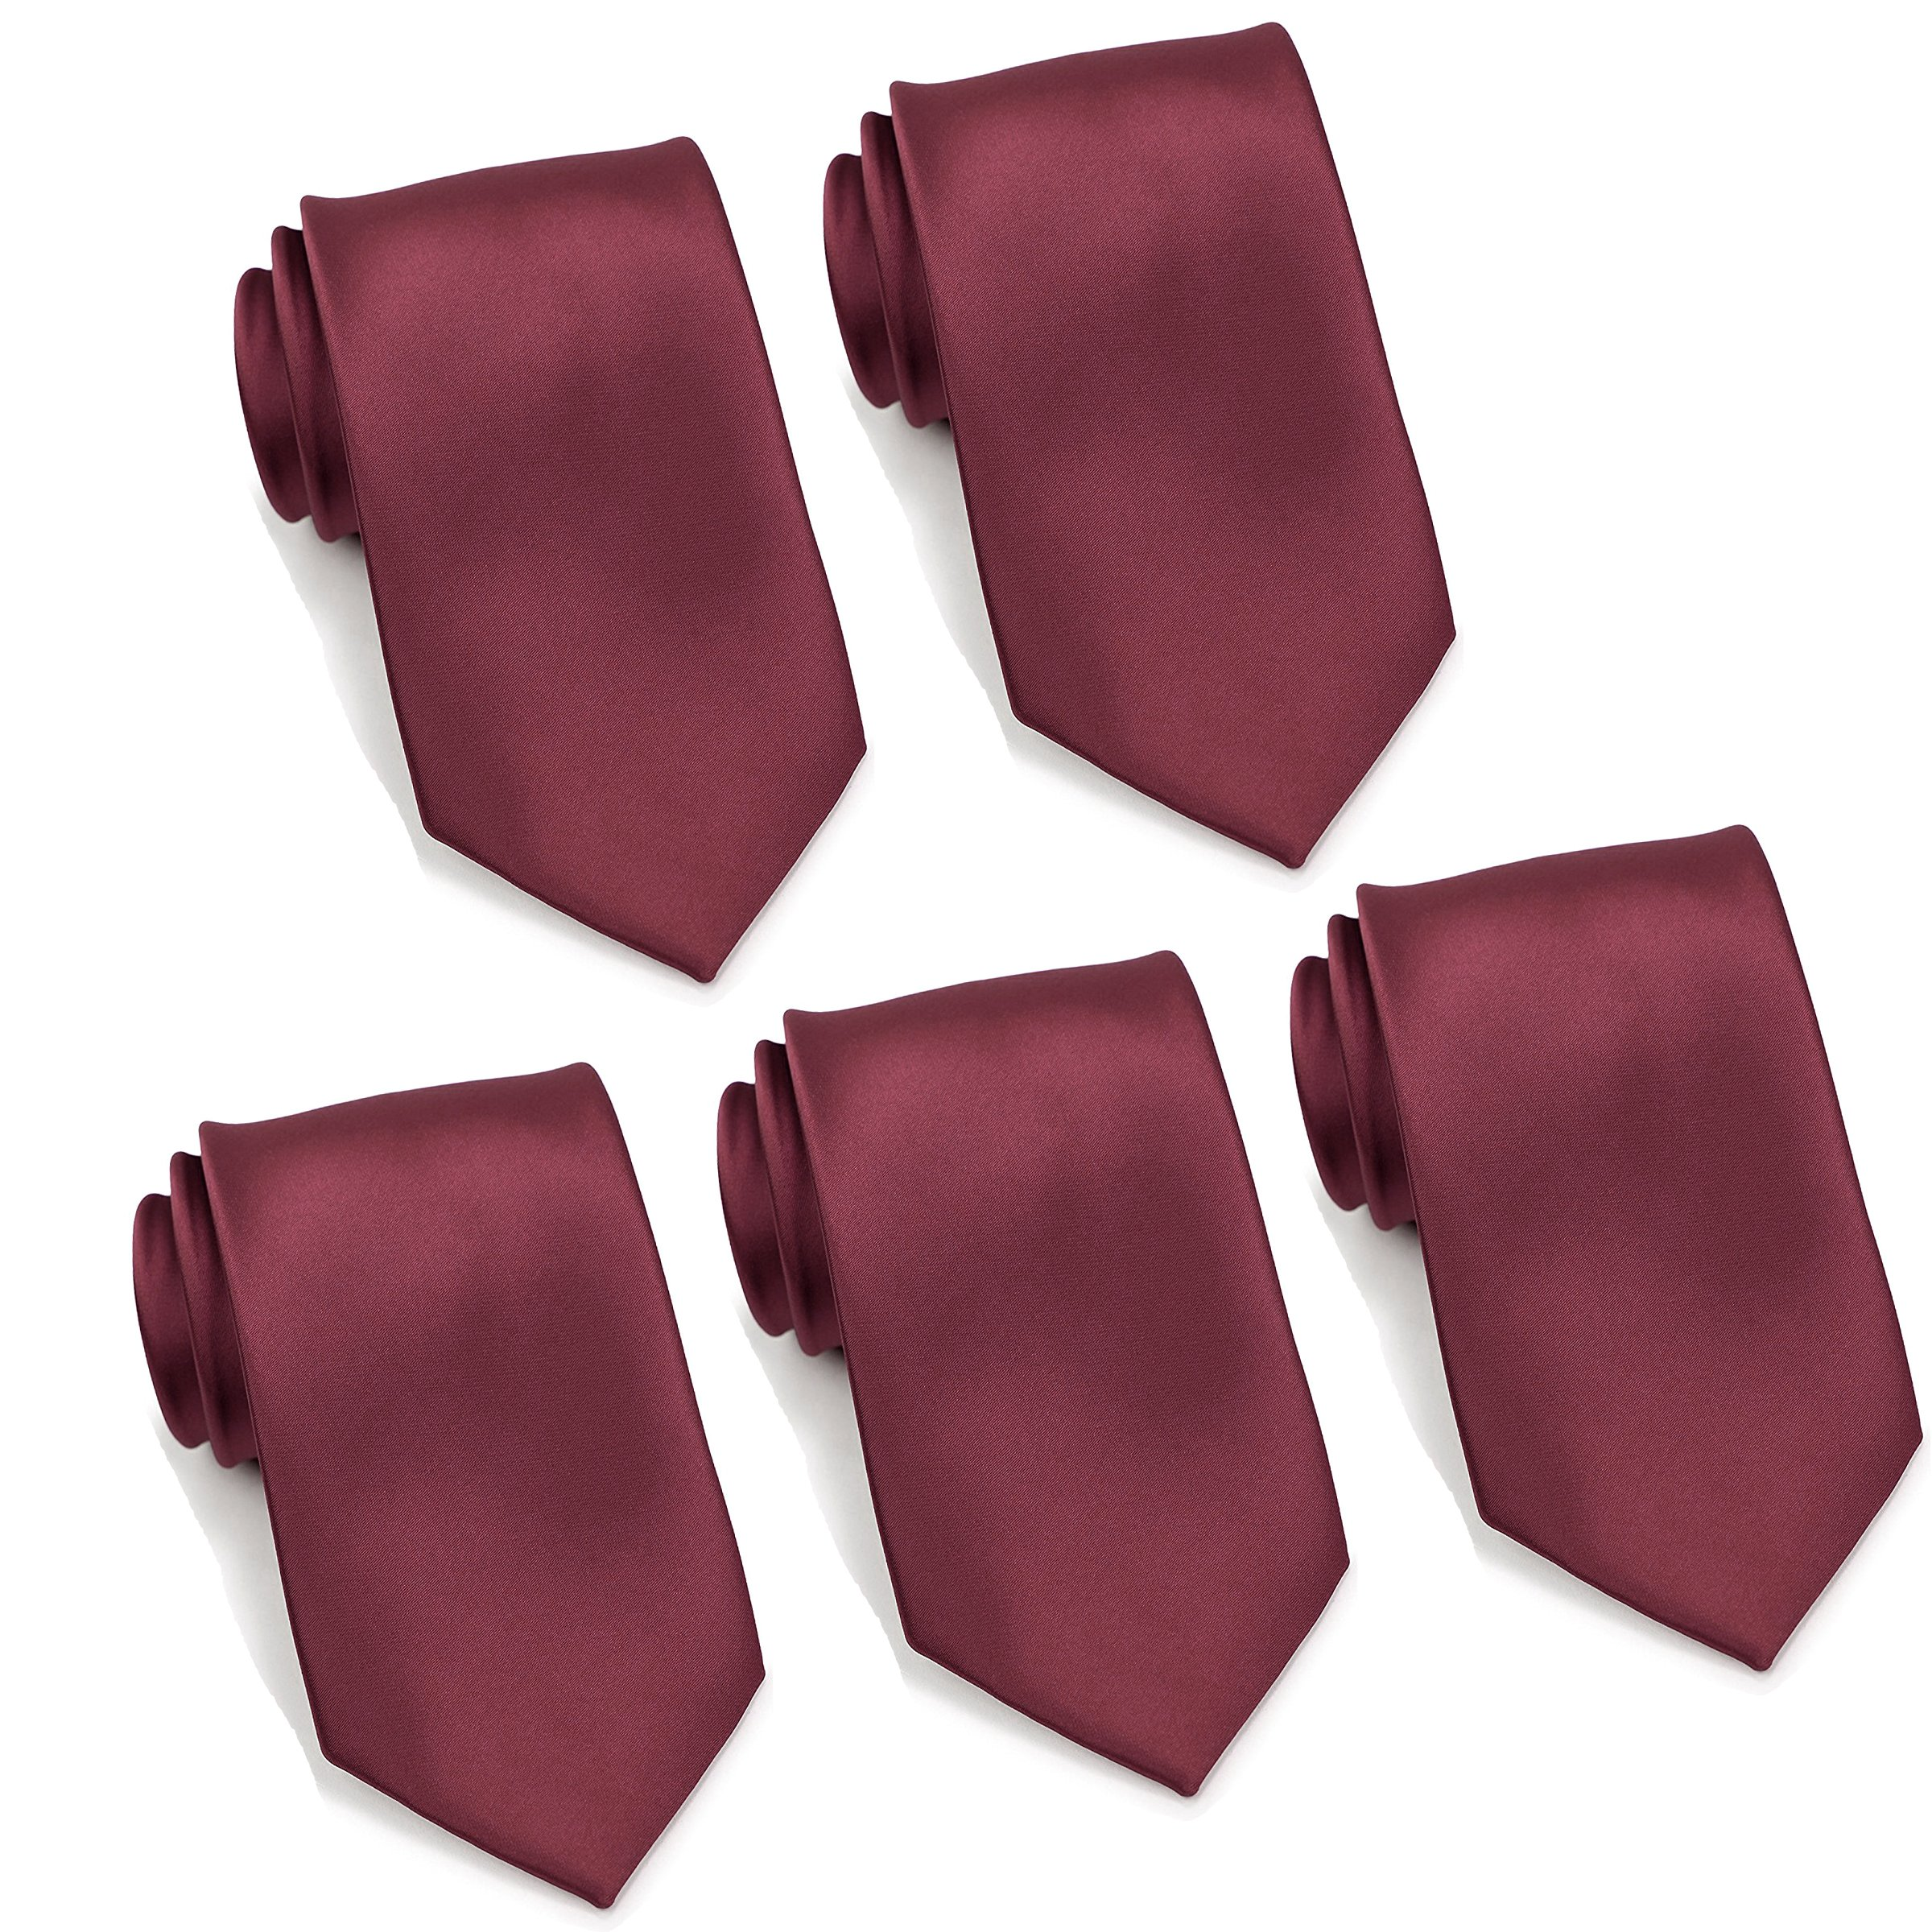 Mens Formal Tie Wholesale Lot of 5 Mens Solid Color Wedding Ties 3.5'' Satin Finish (Burgundy)